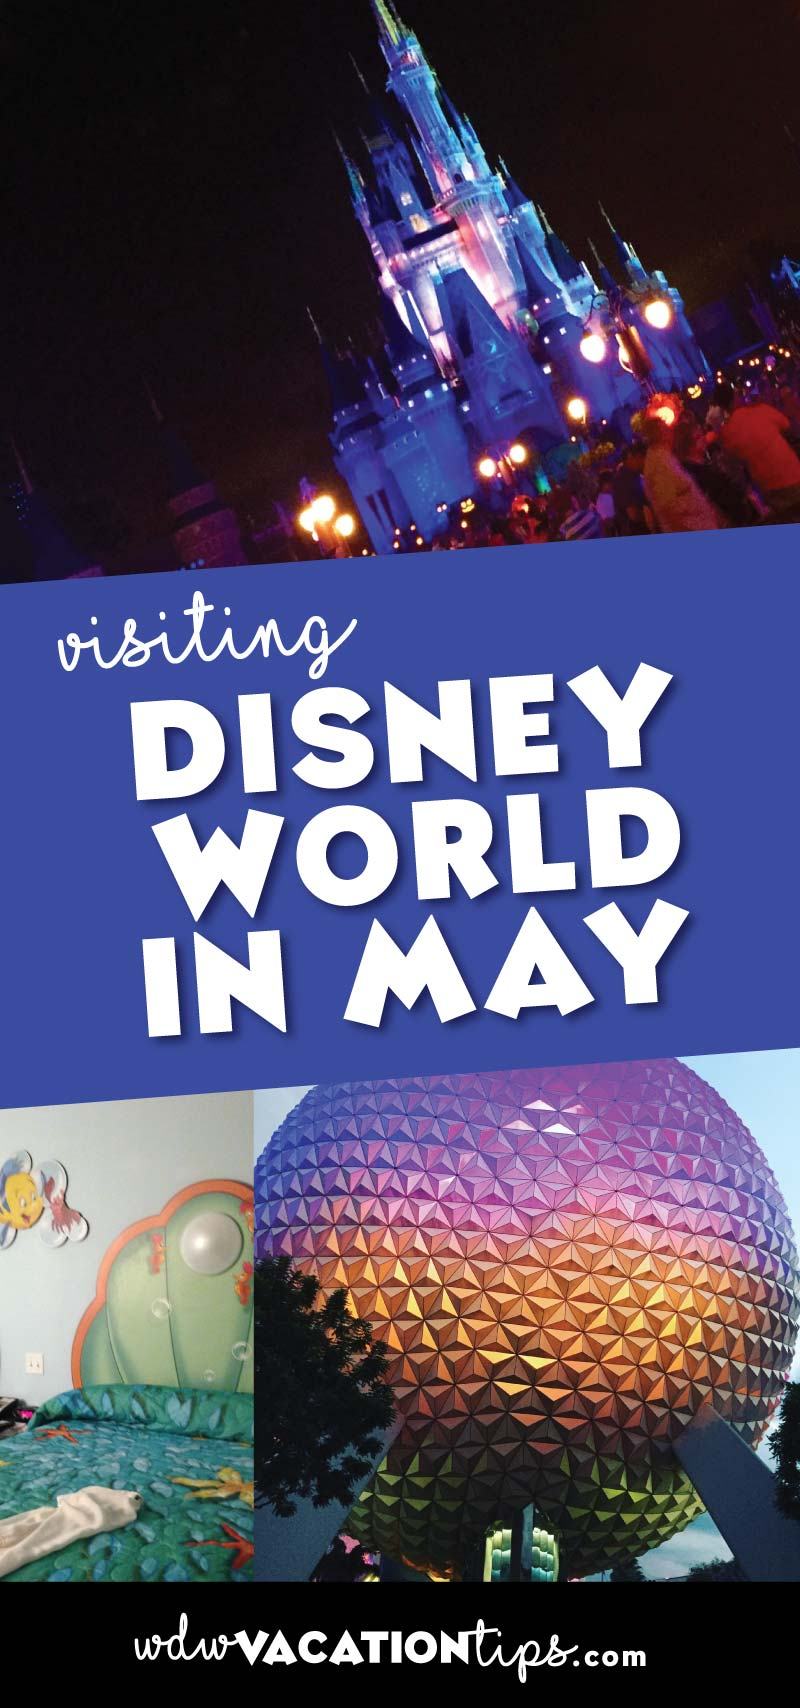 Disney World in May kicks off the start of summer. I would avoid the last week of this month as the crowds pour in for the holiday weekend and start of summer.